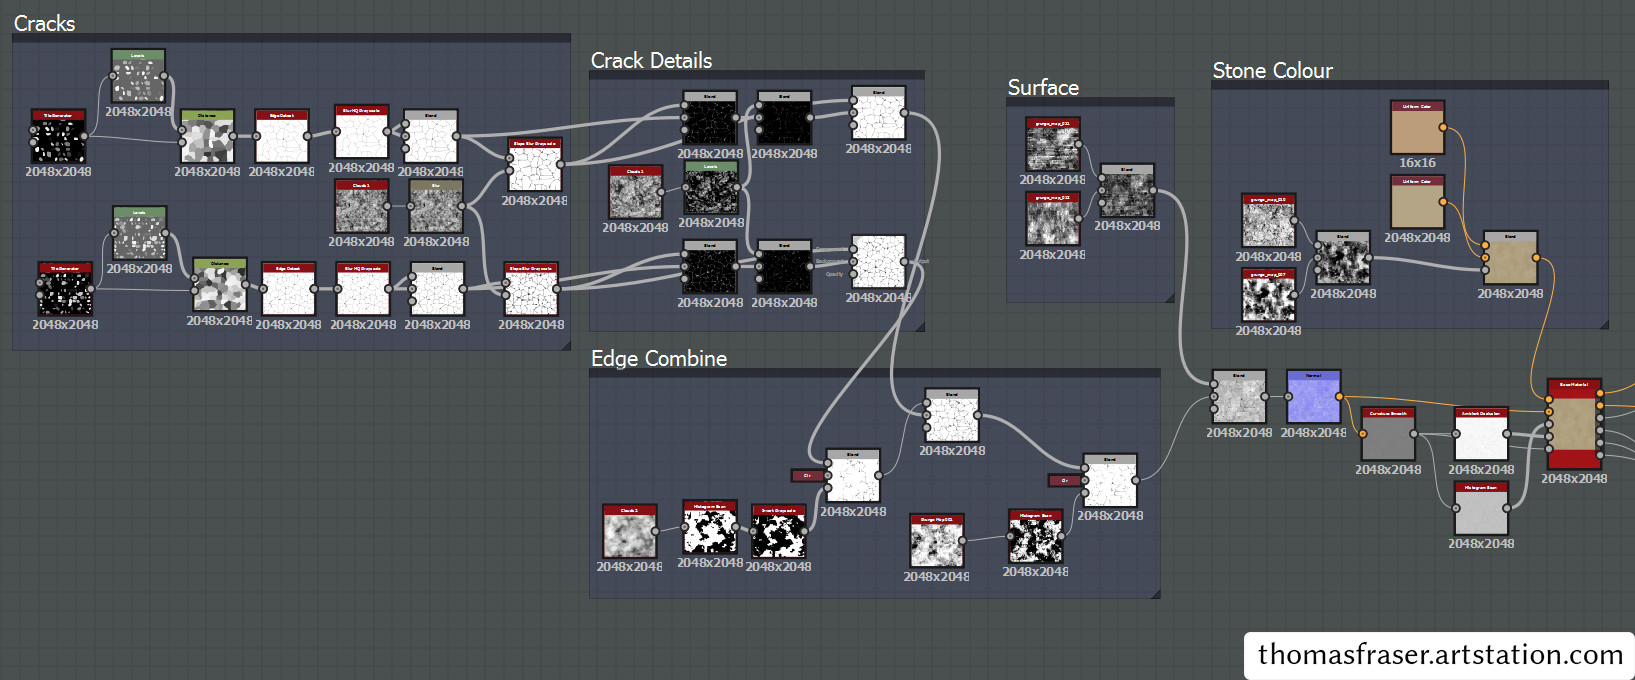 Thomas fraser substance designer graph